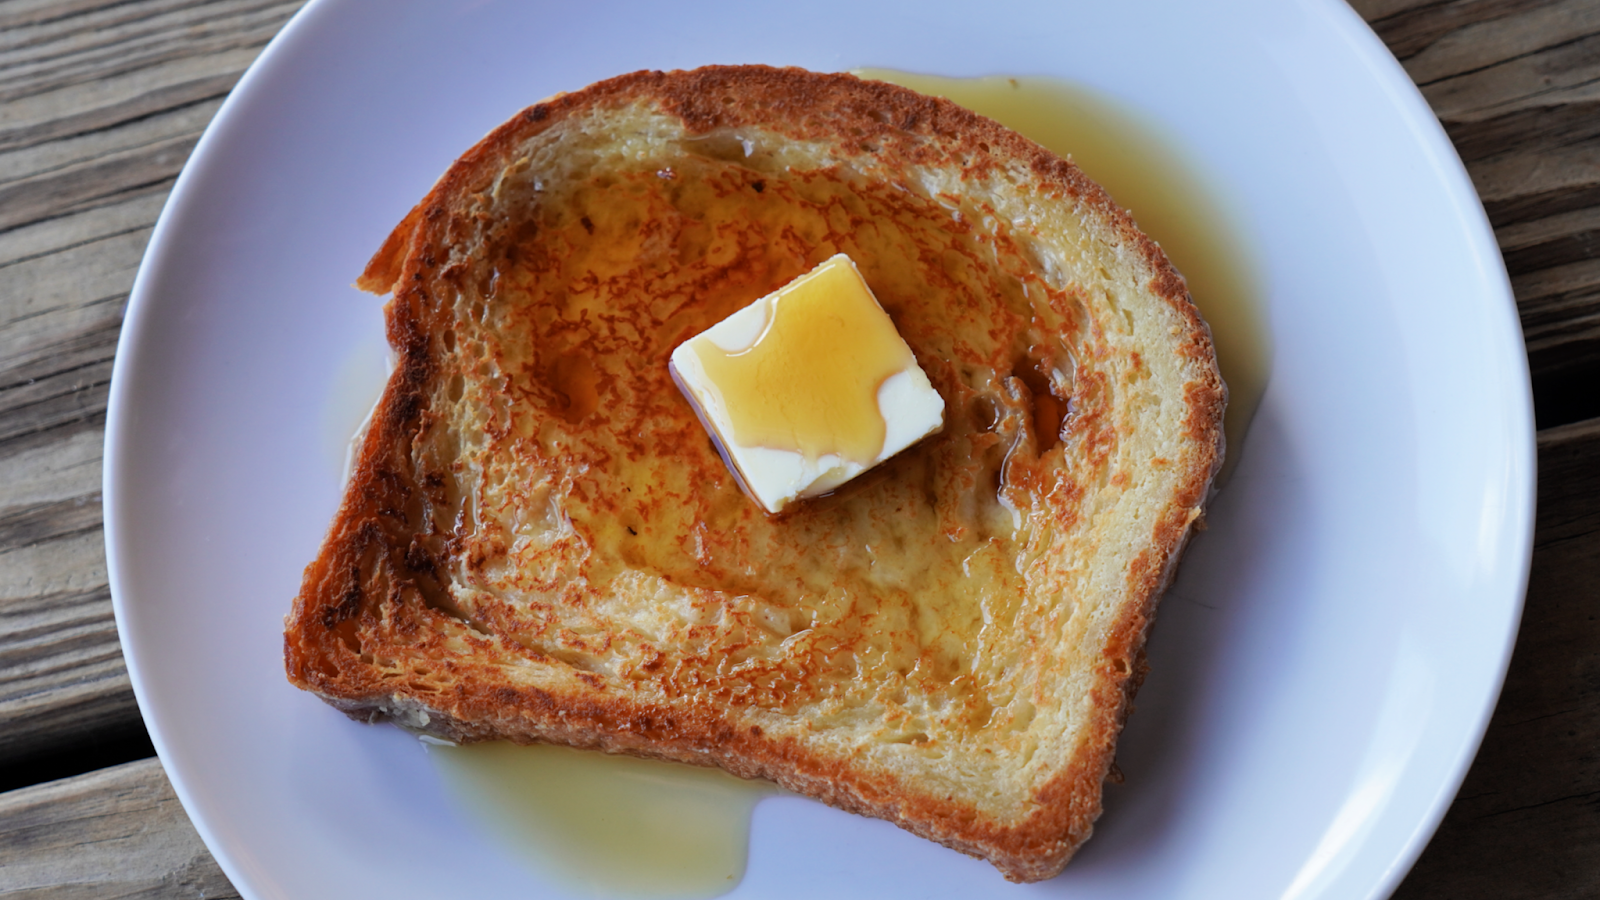 A slice of french toast topped with a pat of butter and maple syrup on a white plate and wood background.